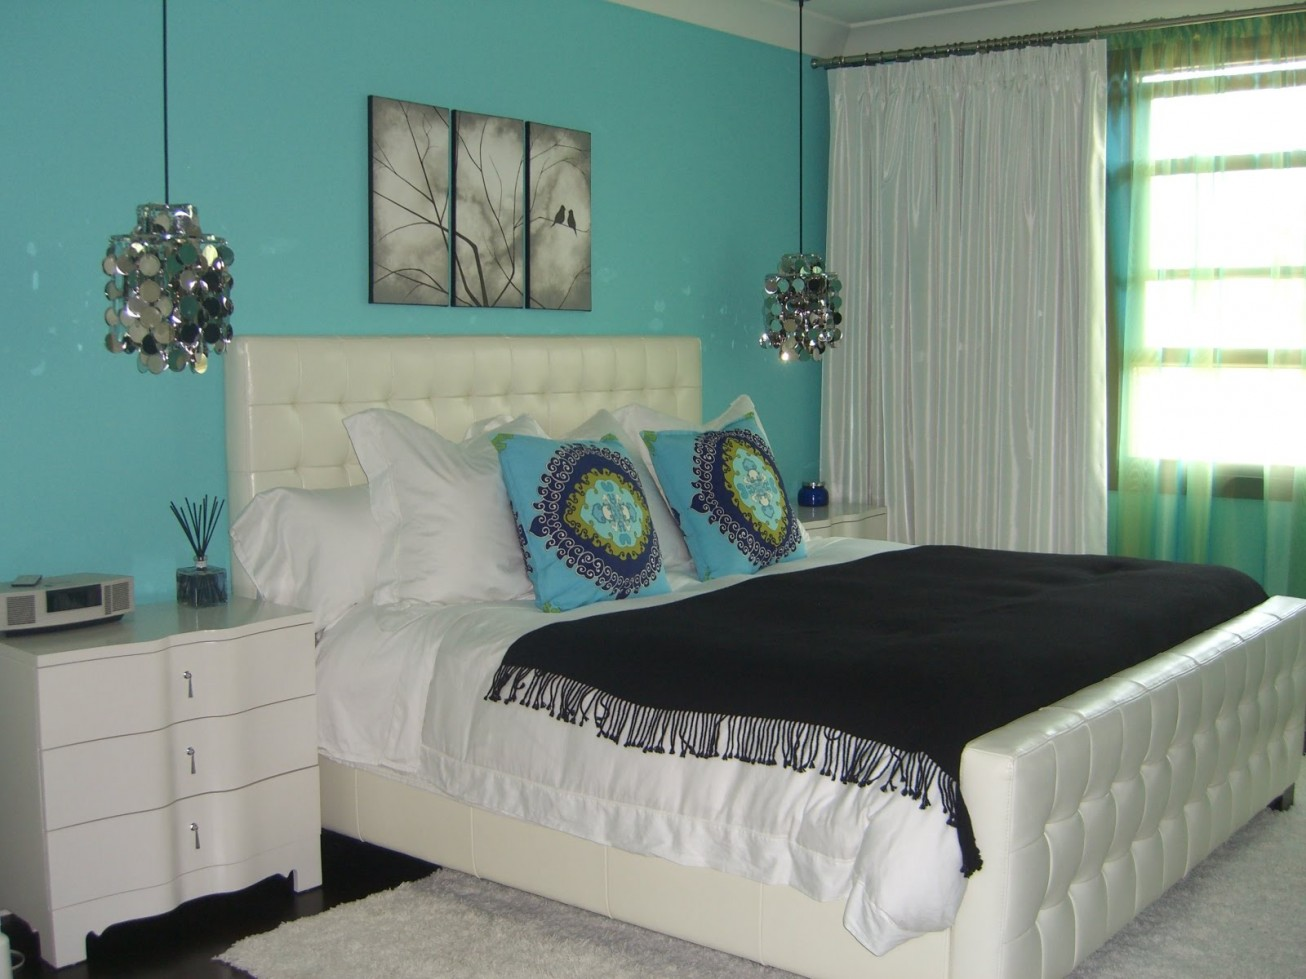 Turquoise Bedroom 68 Photos Interior Design In Chocolate Tones And Turquoise Brown